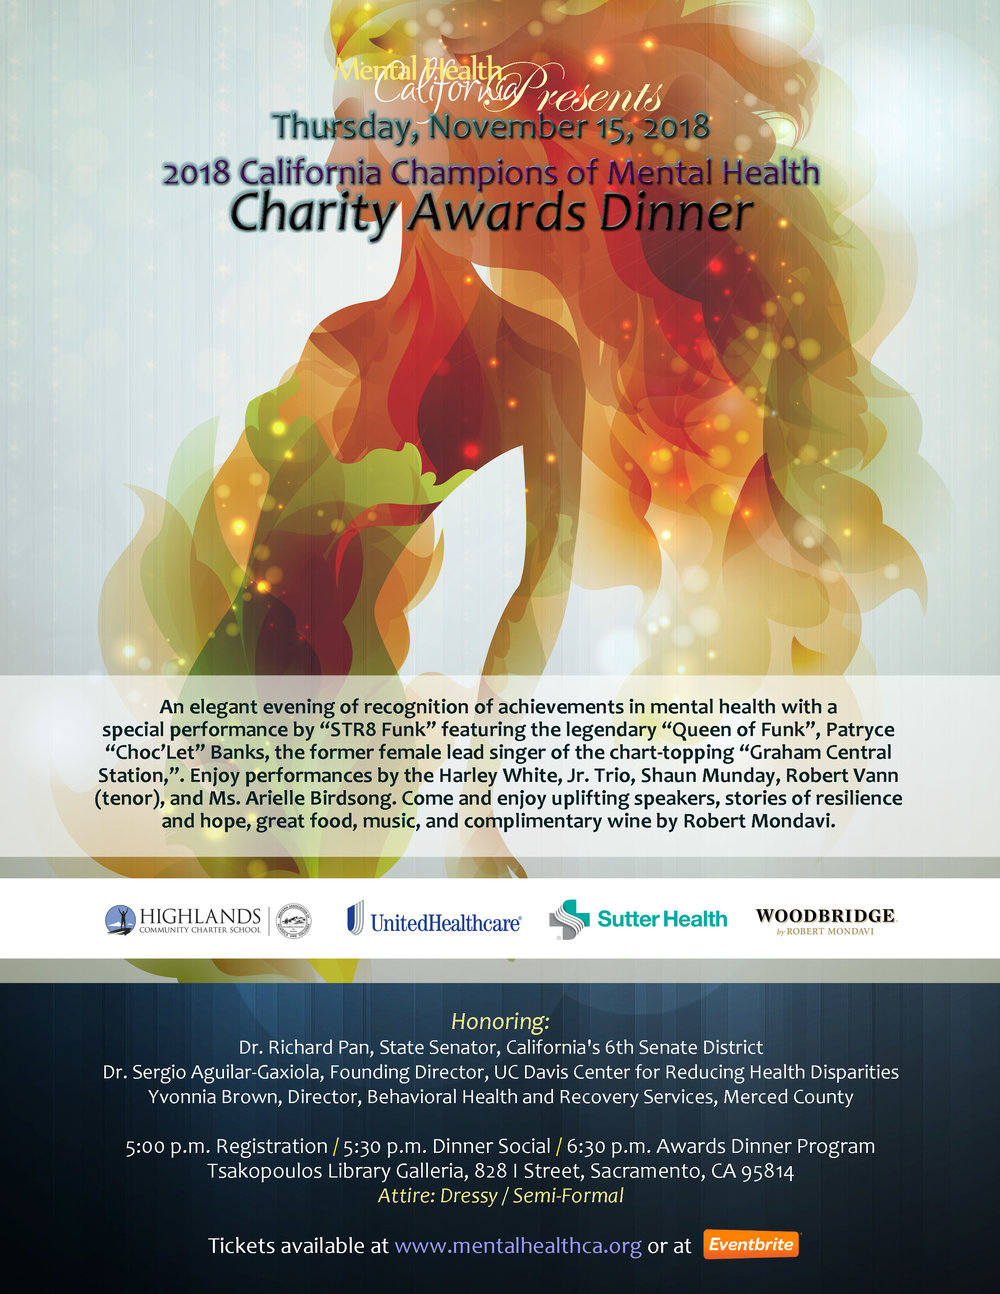 2018 Awards Dinner Flyer.jpg